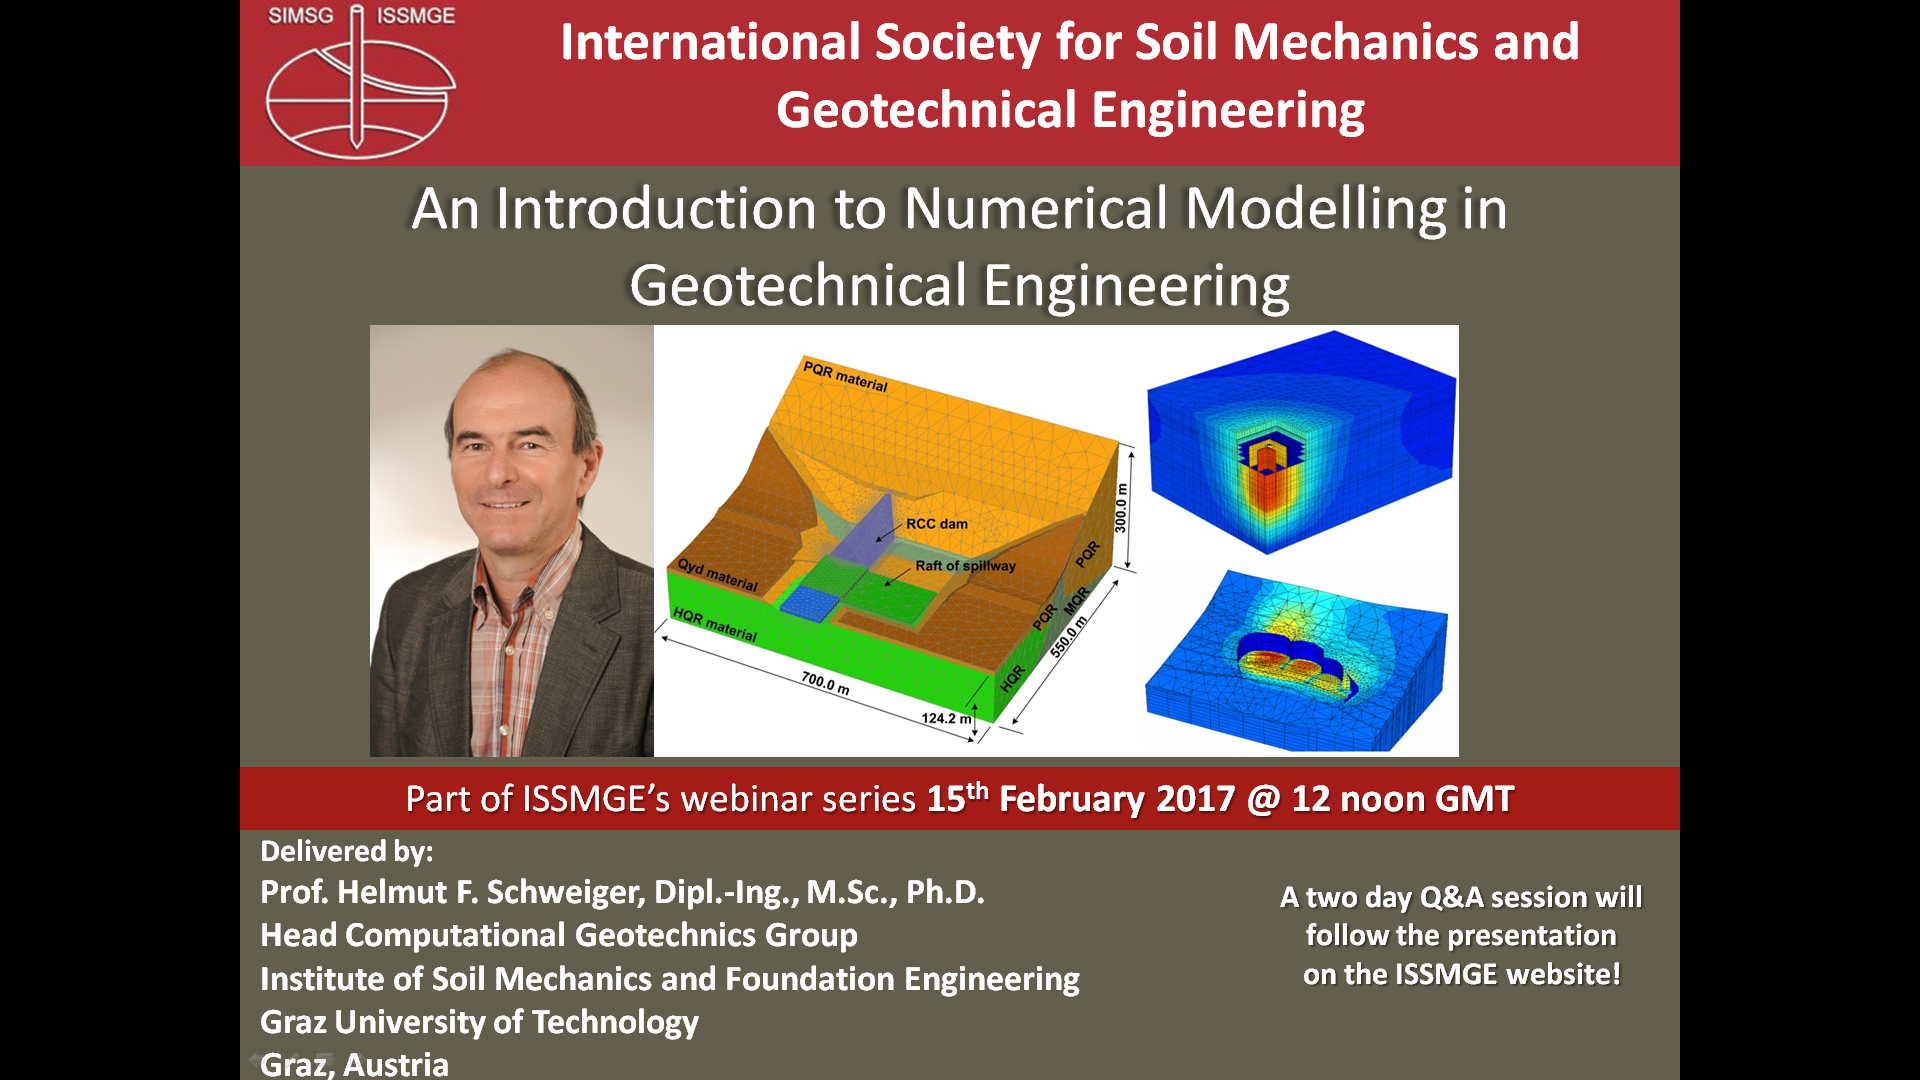 "An Introduction to Numerical Modelling in Geotechnical Engineering {""category"":""webinar"",""subjects"":[""Numerical & Constitutive Modelling""],""number"":""NSM101"",""instructors"":[""Helmut F. Schweiger""]}"